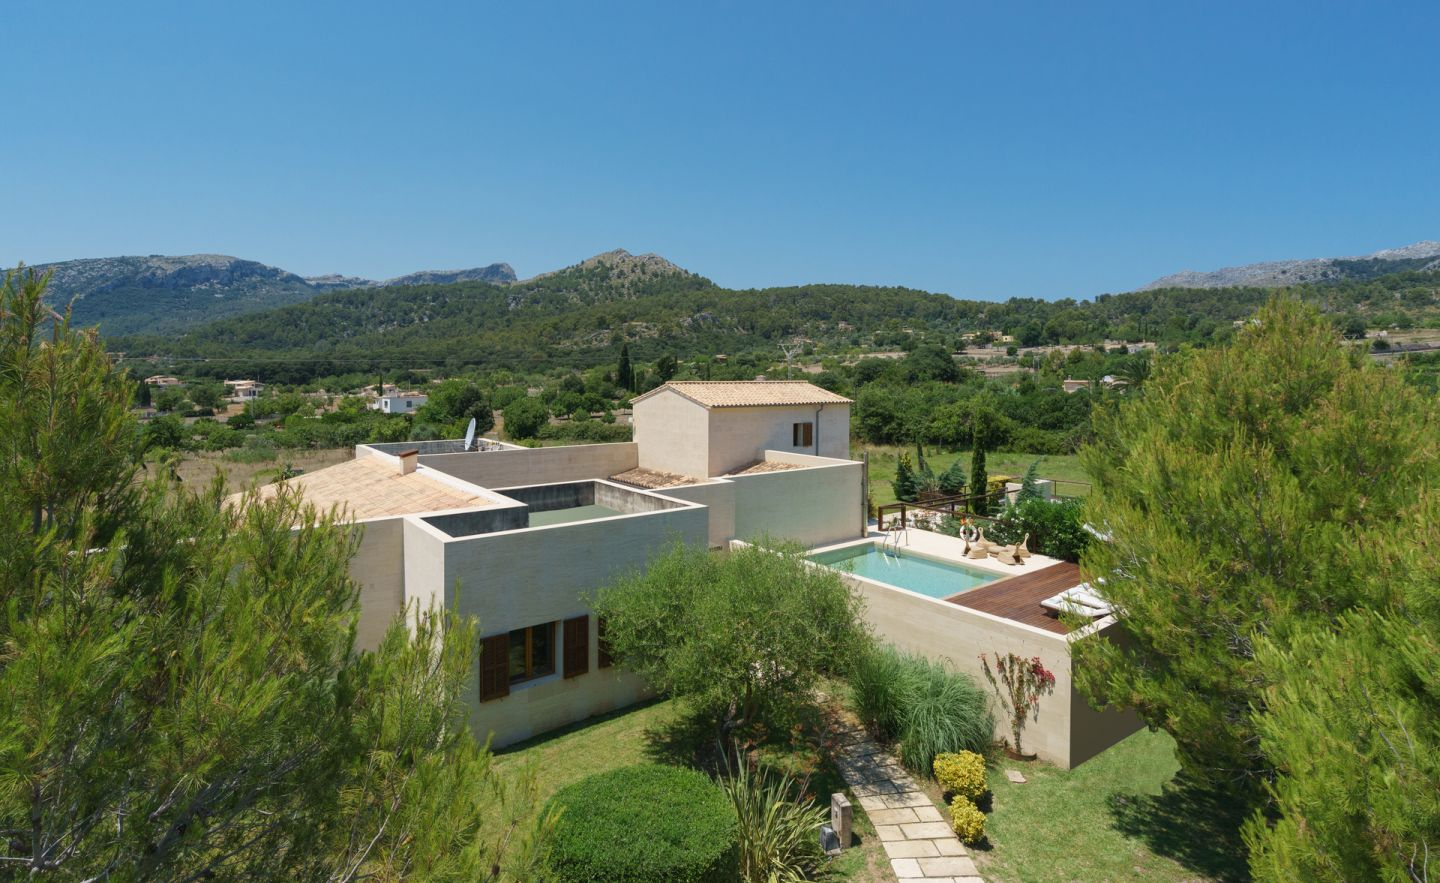 4 Bed Countryside House for sale in POLLENSA 19